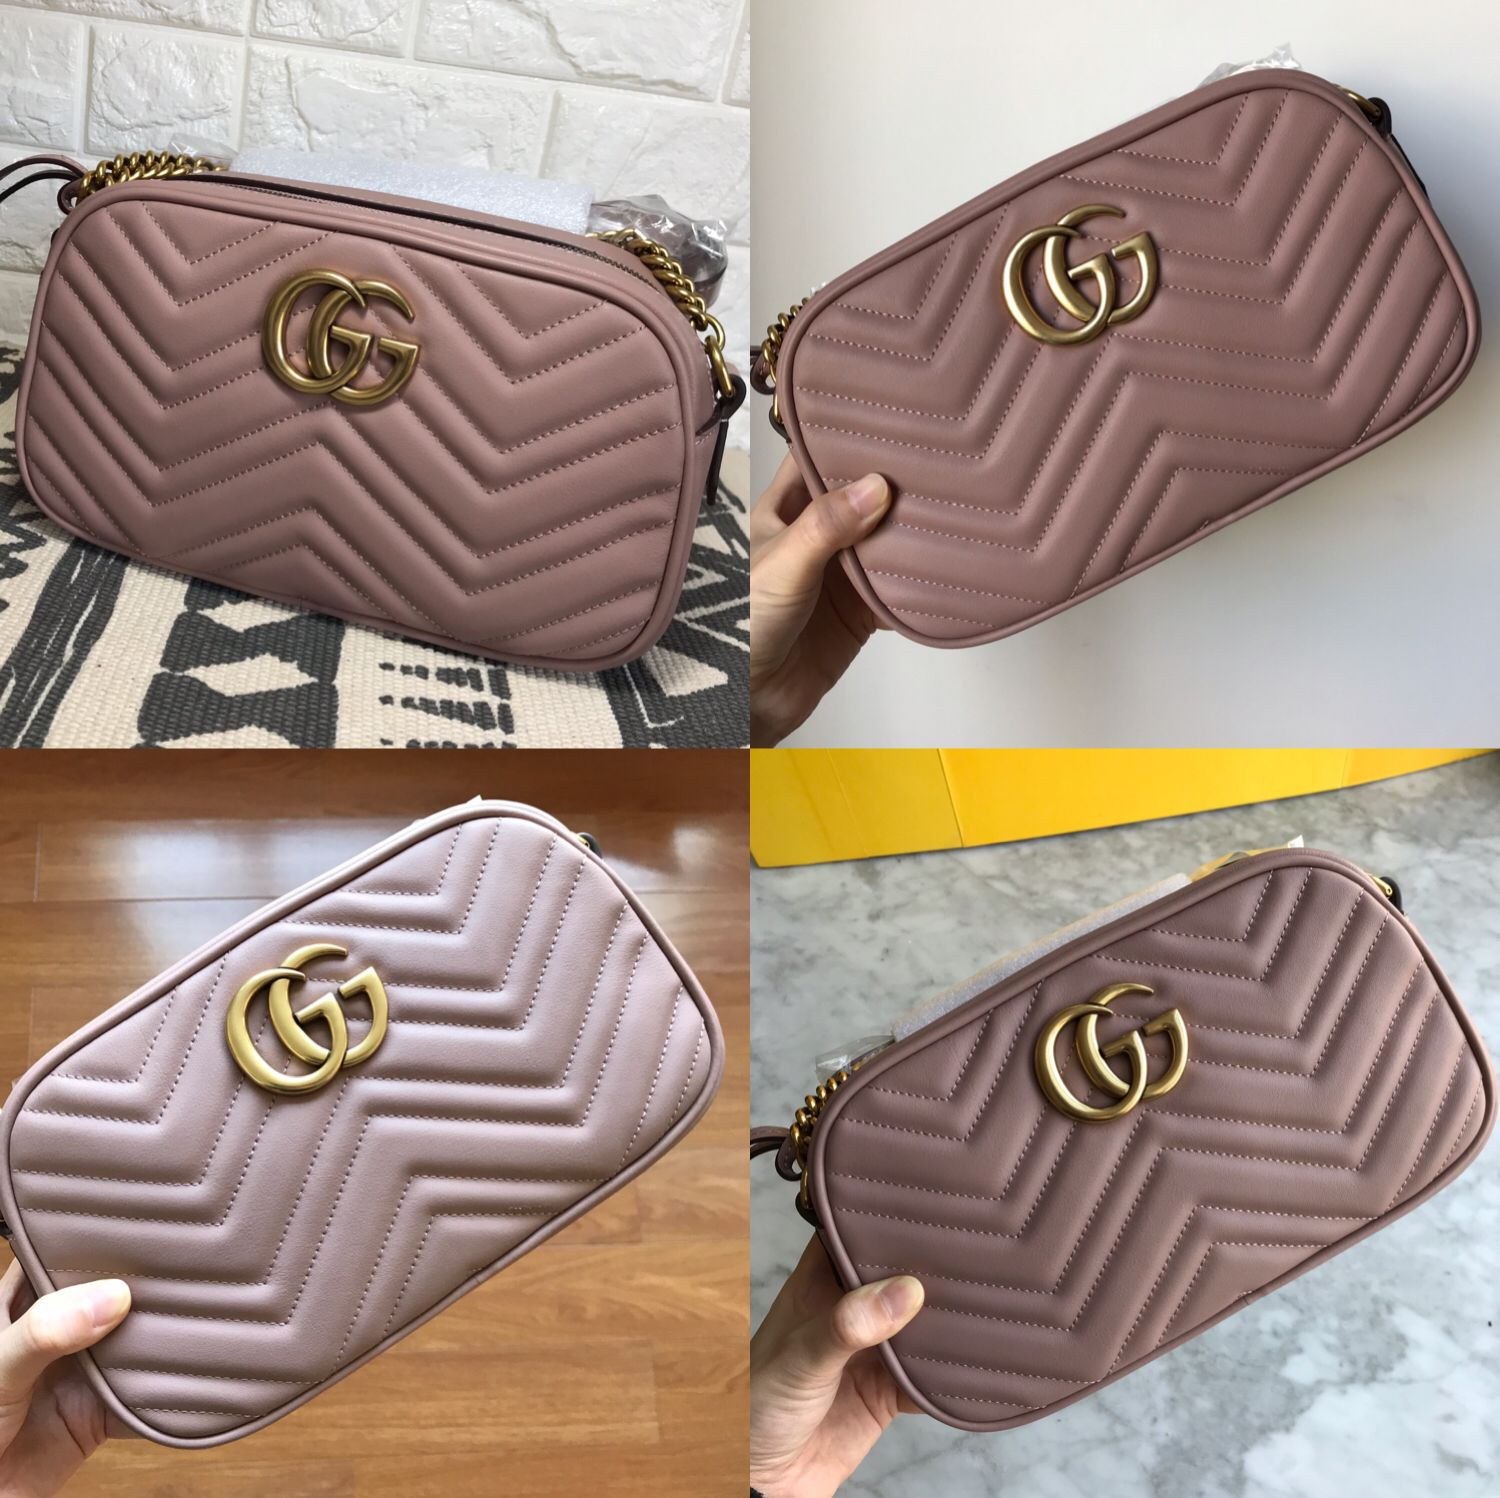 d8771c32b1f Gucci marmont camera bag 24cm nude pink color